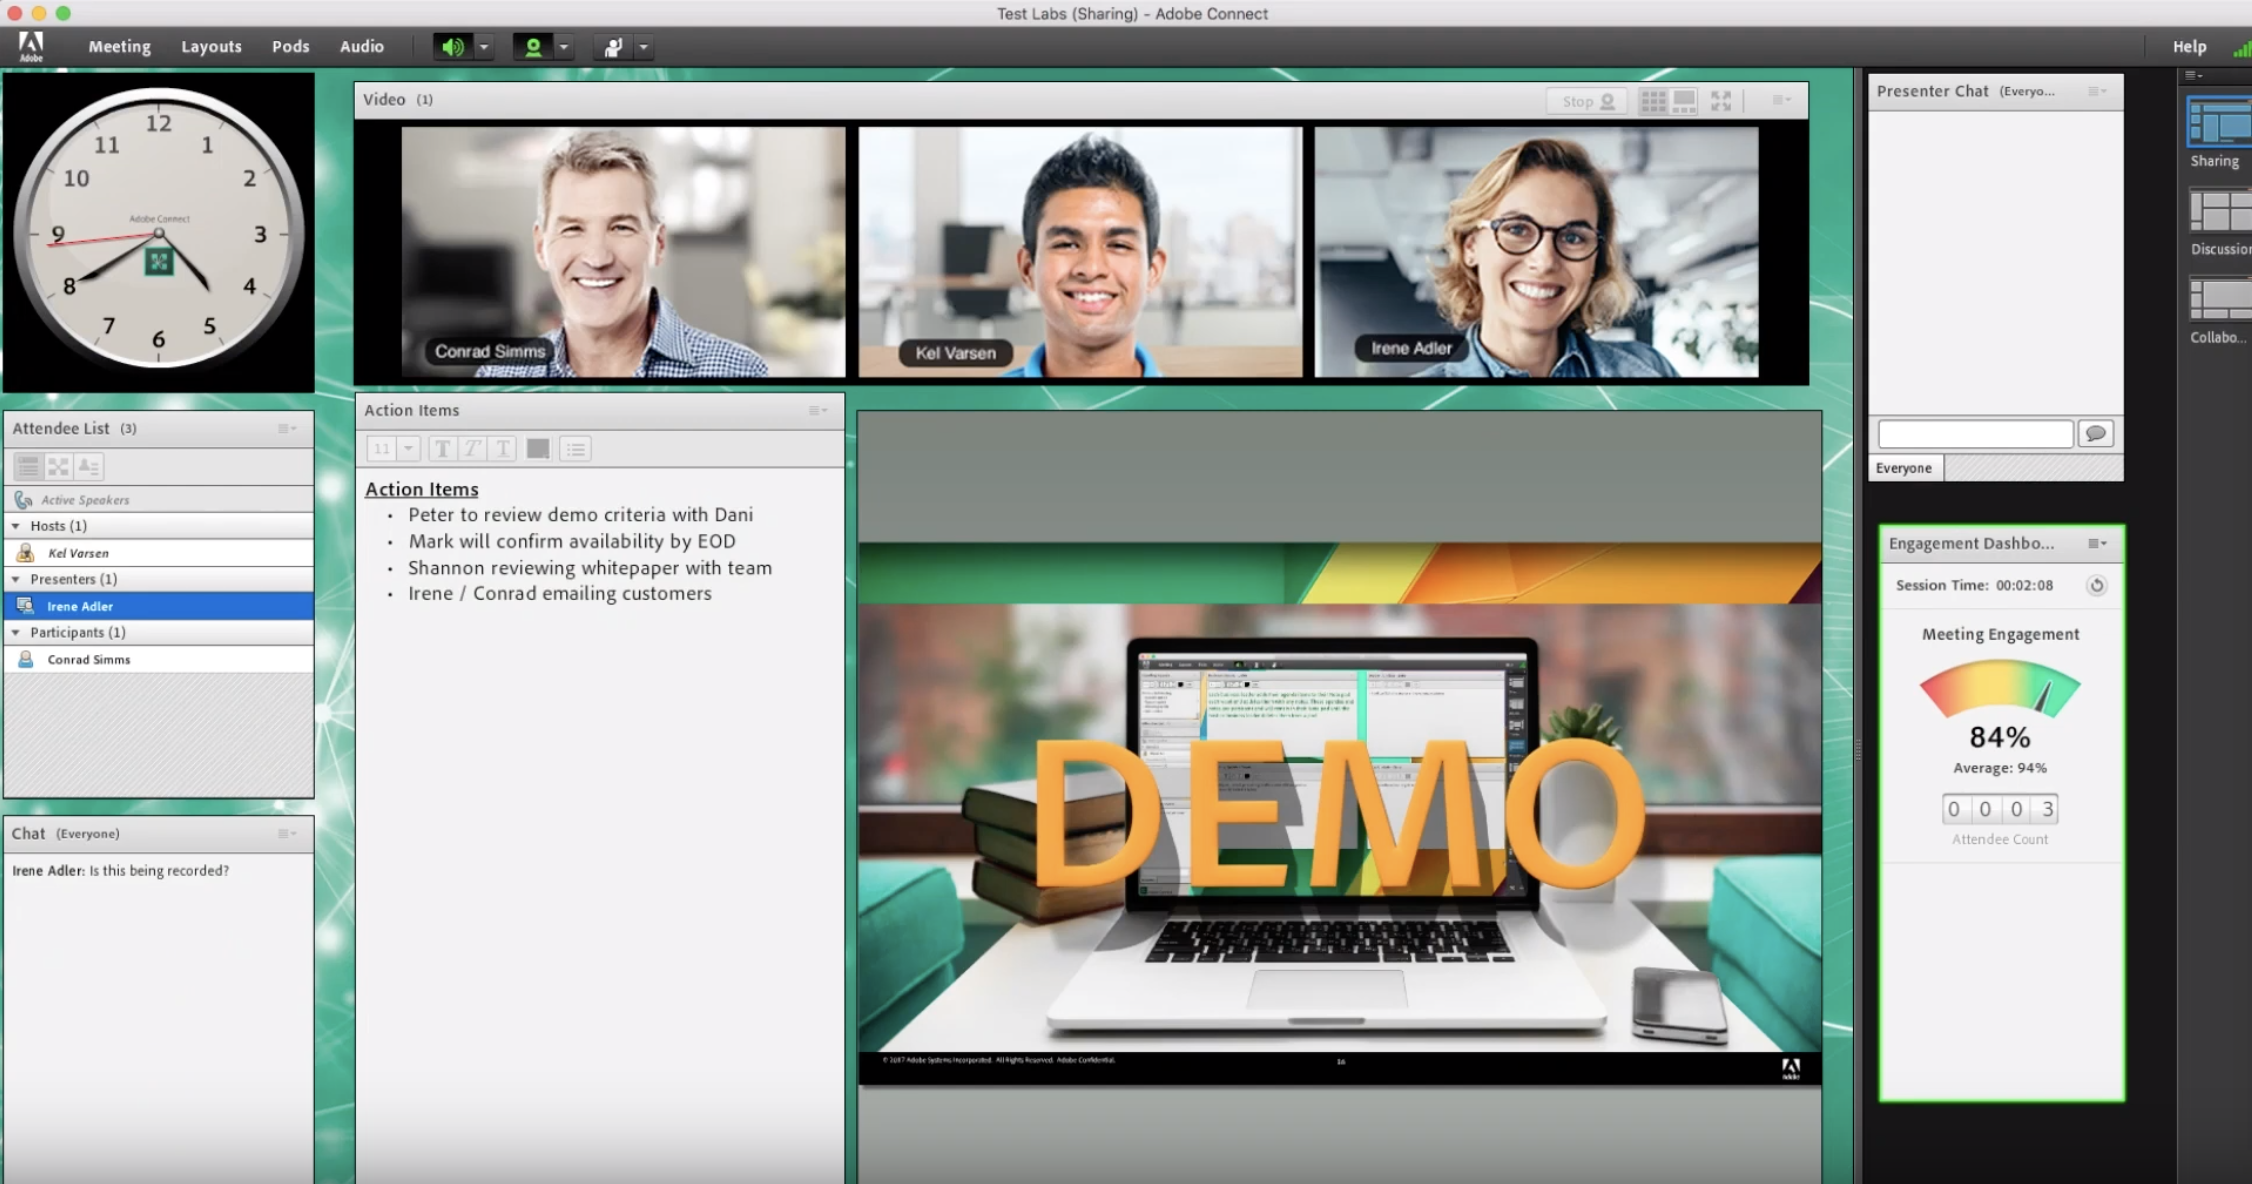 Adobe Connect Demo - Screenshot-2019-03-04-16.37.22.png